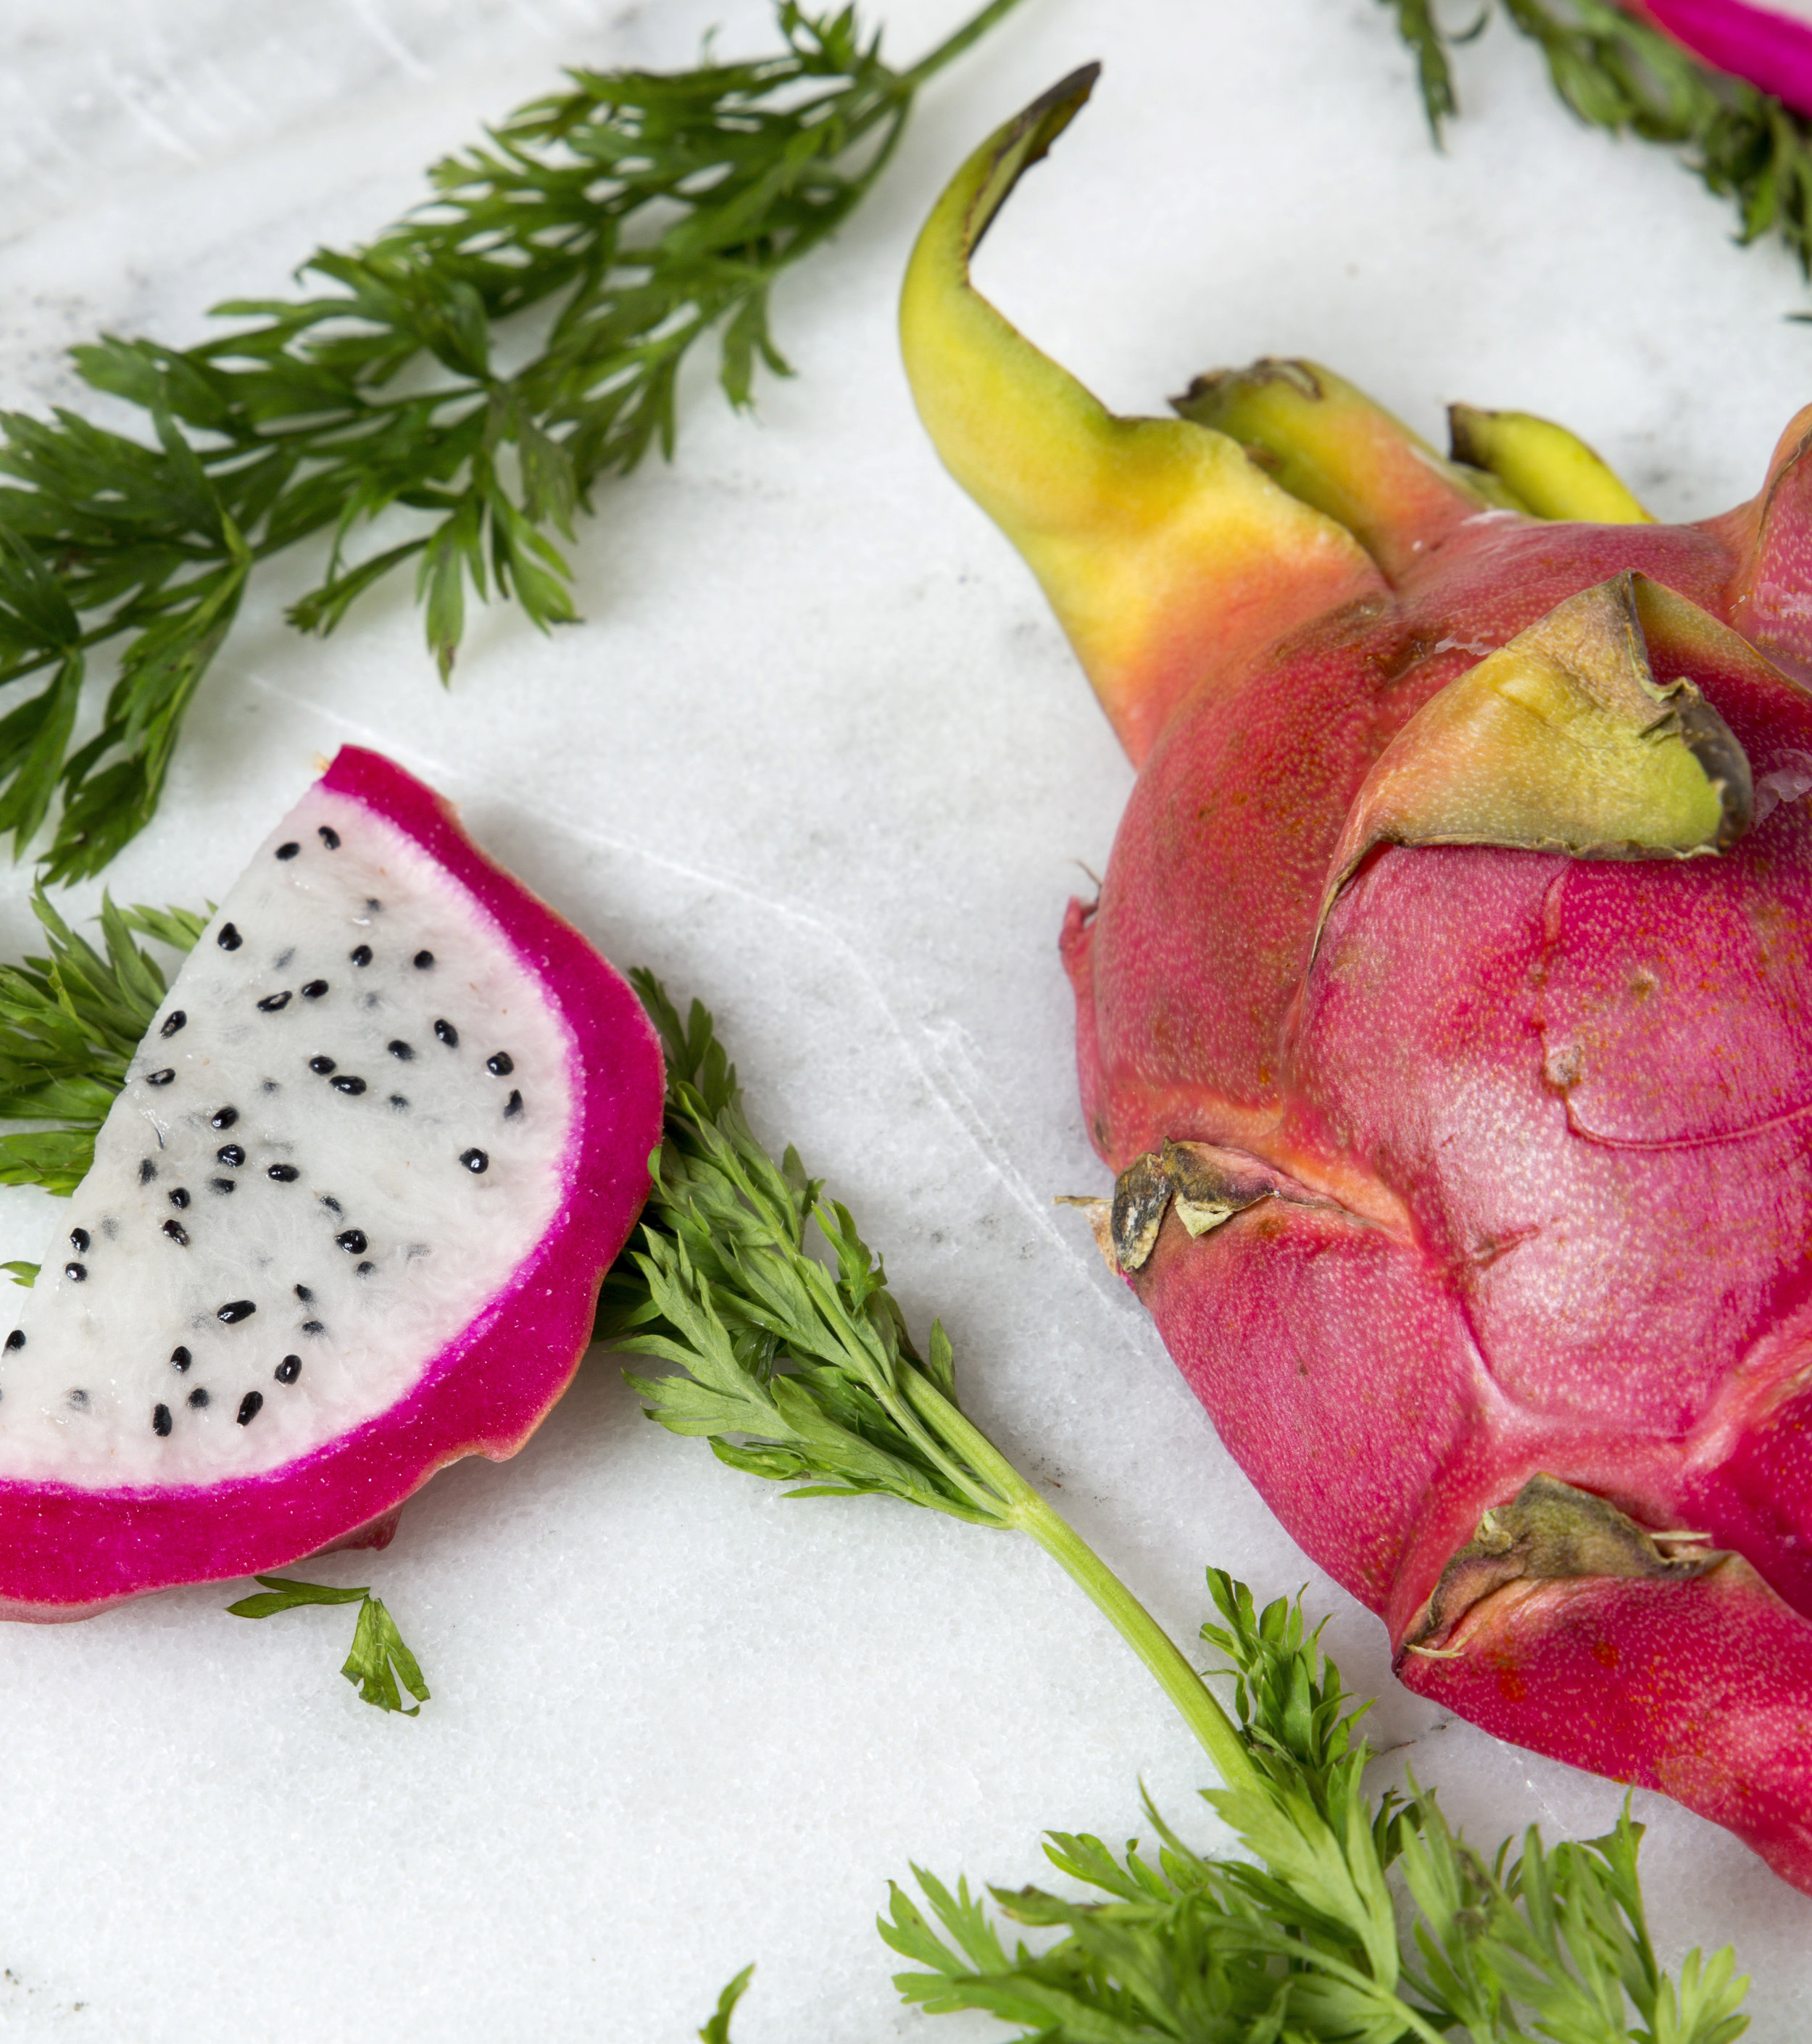 dragonfruit_edited.jpg